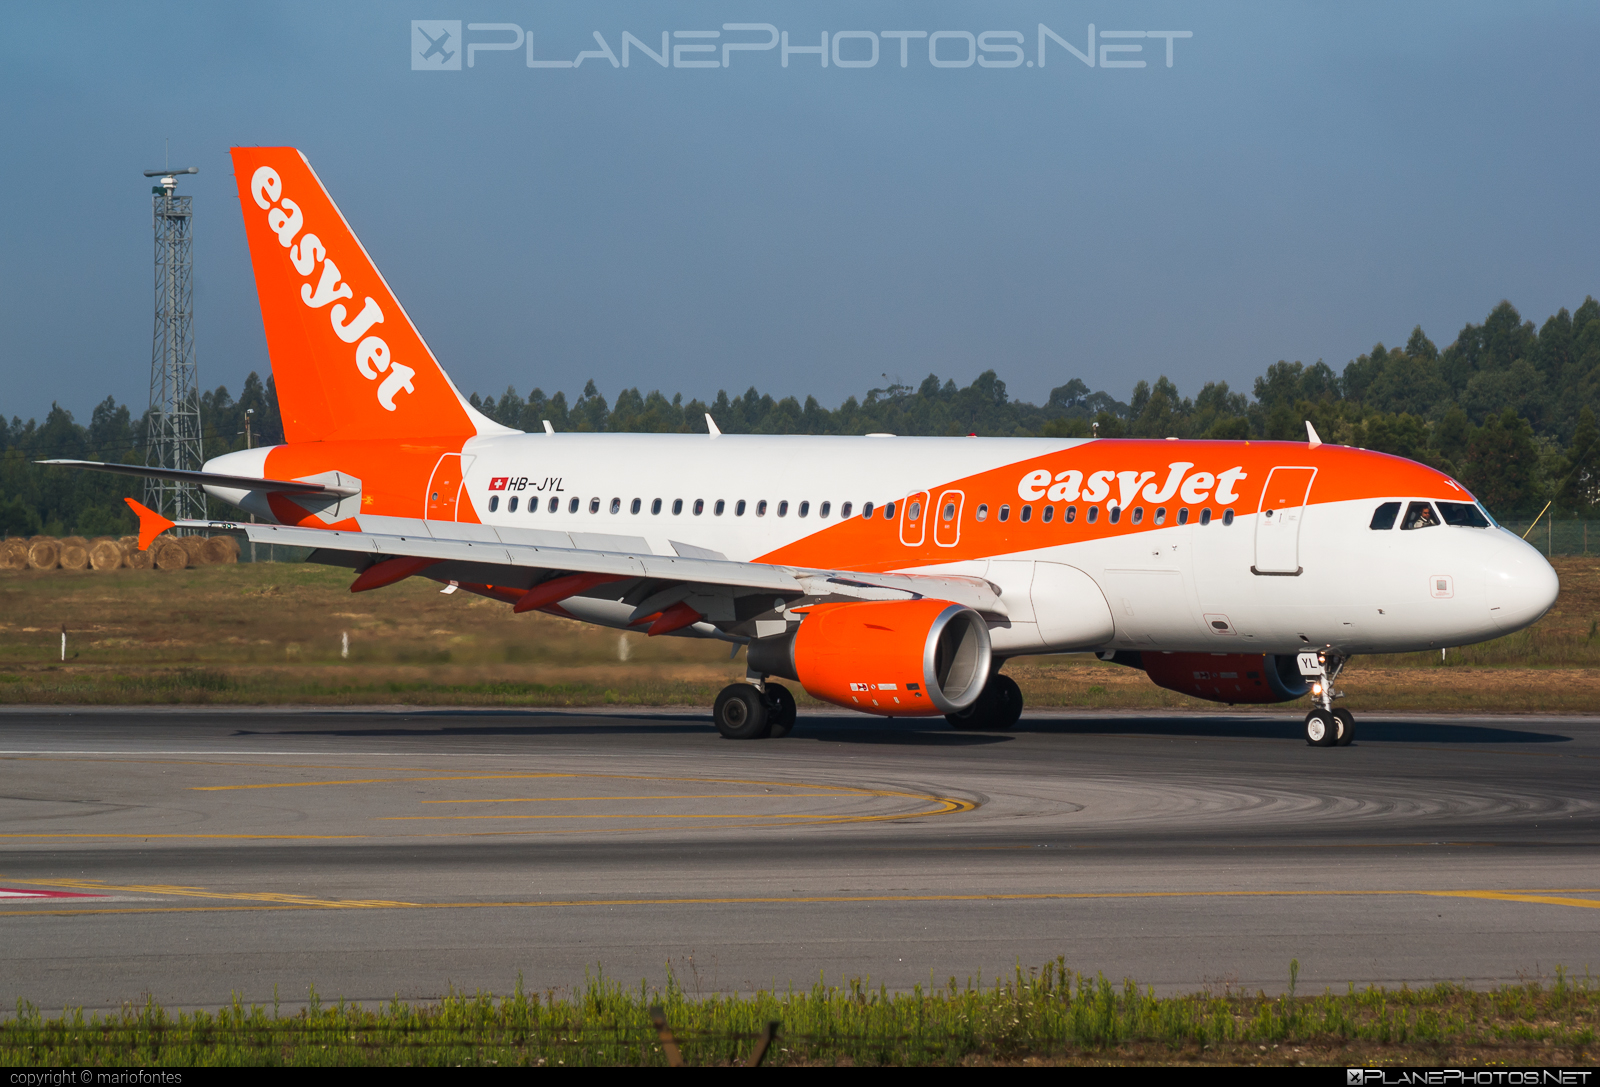 Airbus A319-111 - HB-JYL operated by easyJet Switzerland #a319 #a320family #airbus #airbus319 #easyjet #easyjetswitzerland